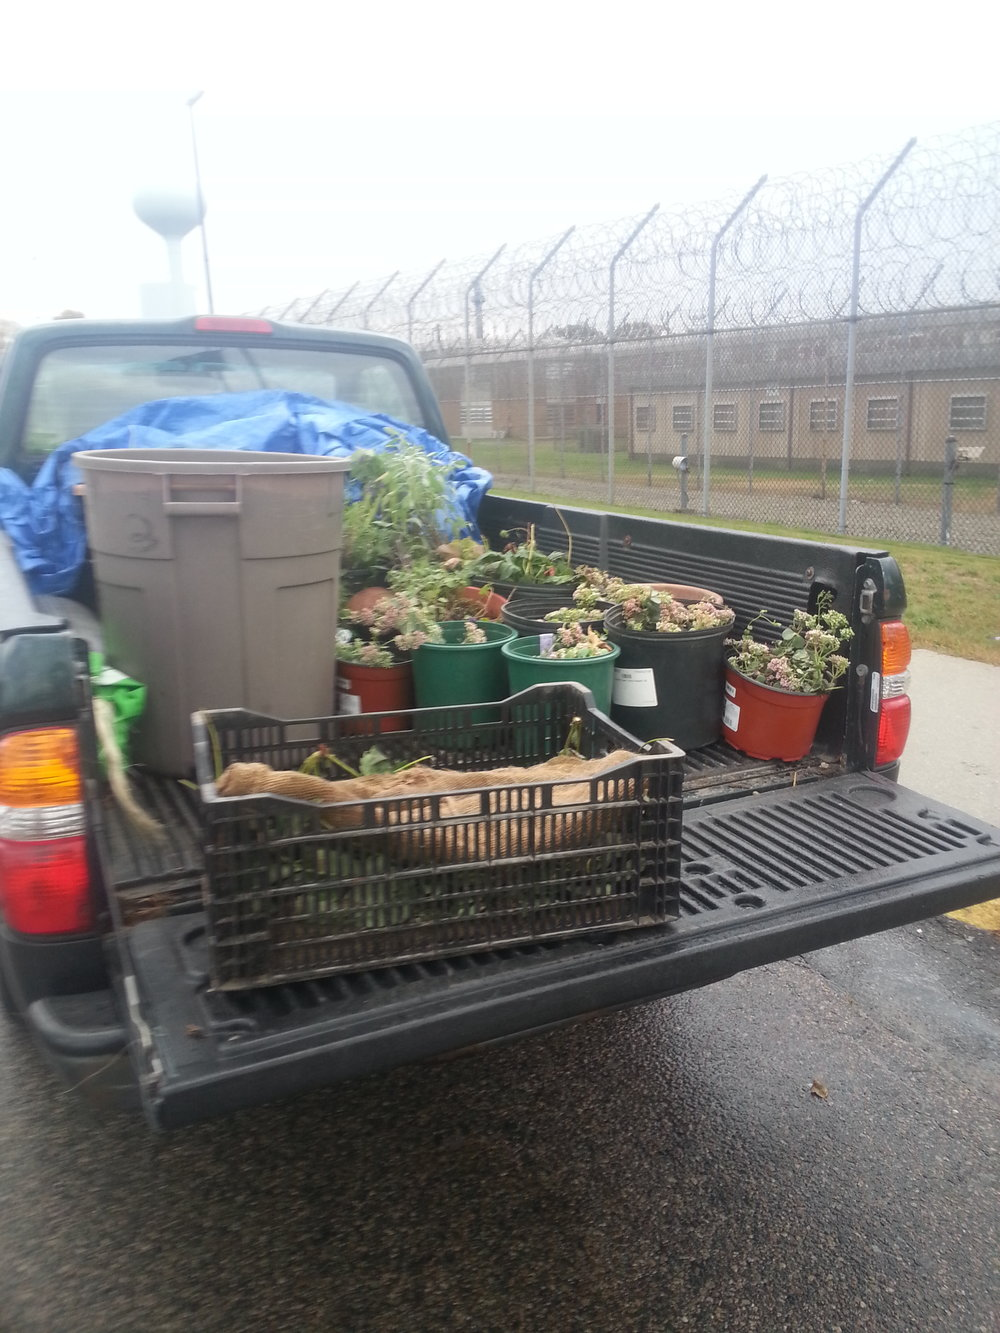 A truckload of strawberries, sedum and other donated perennials heading into a prison yard south of Boston.